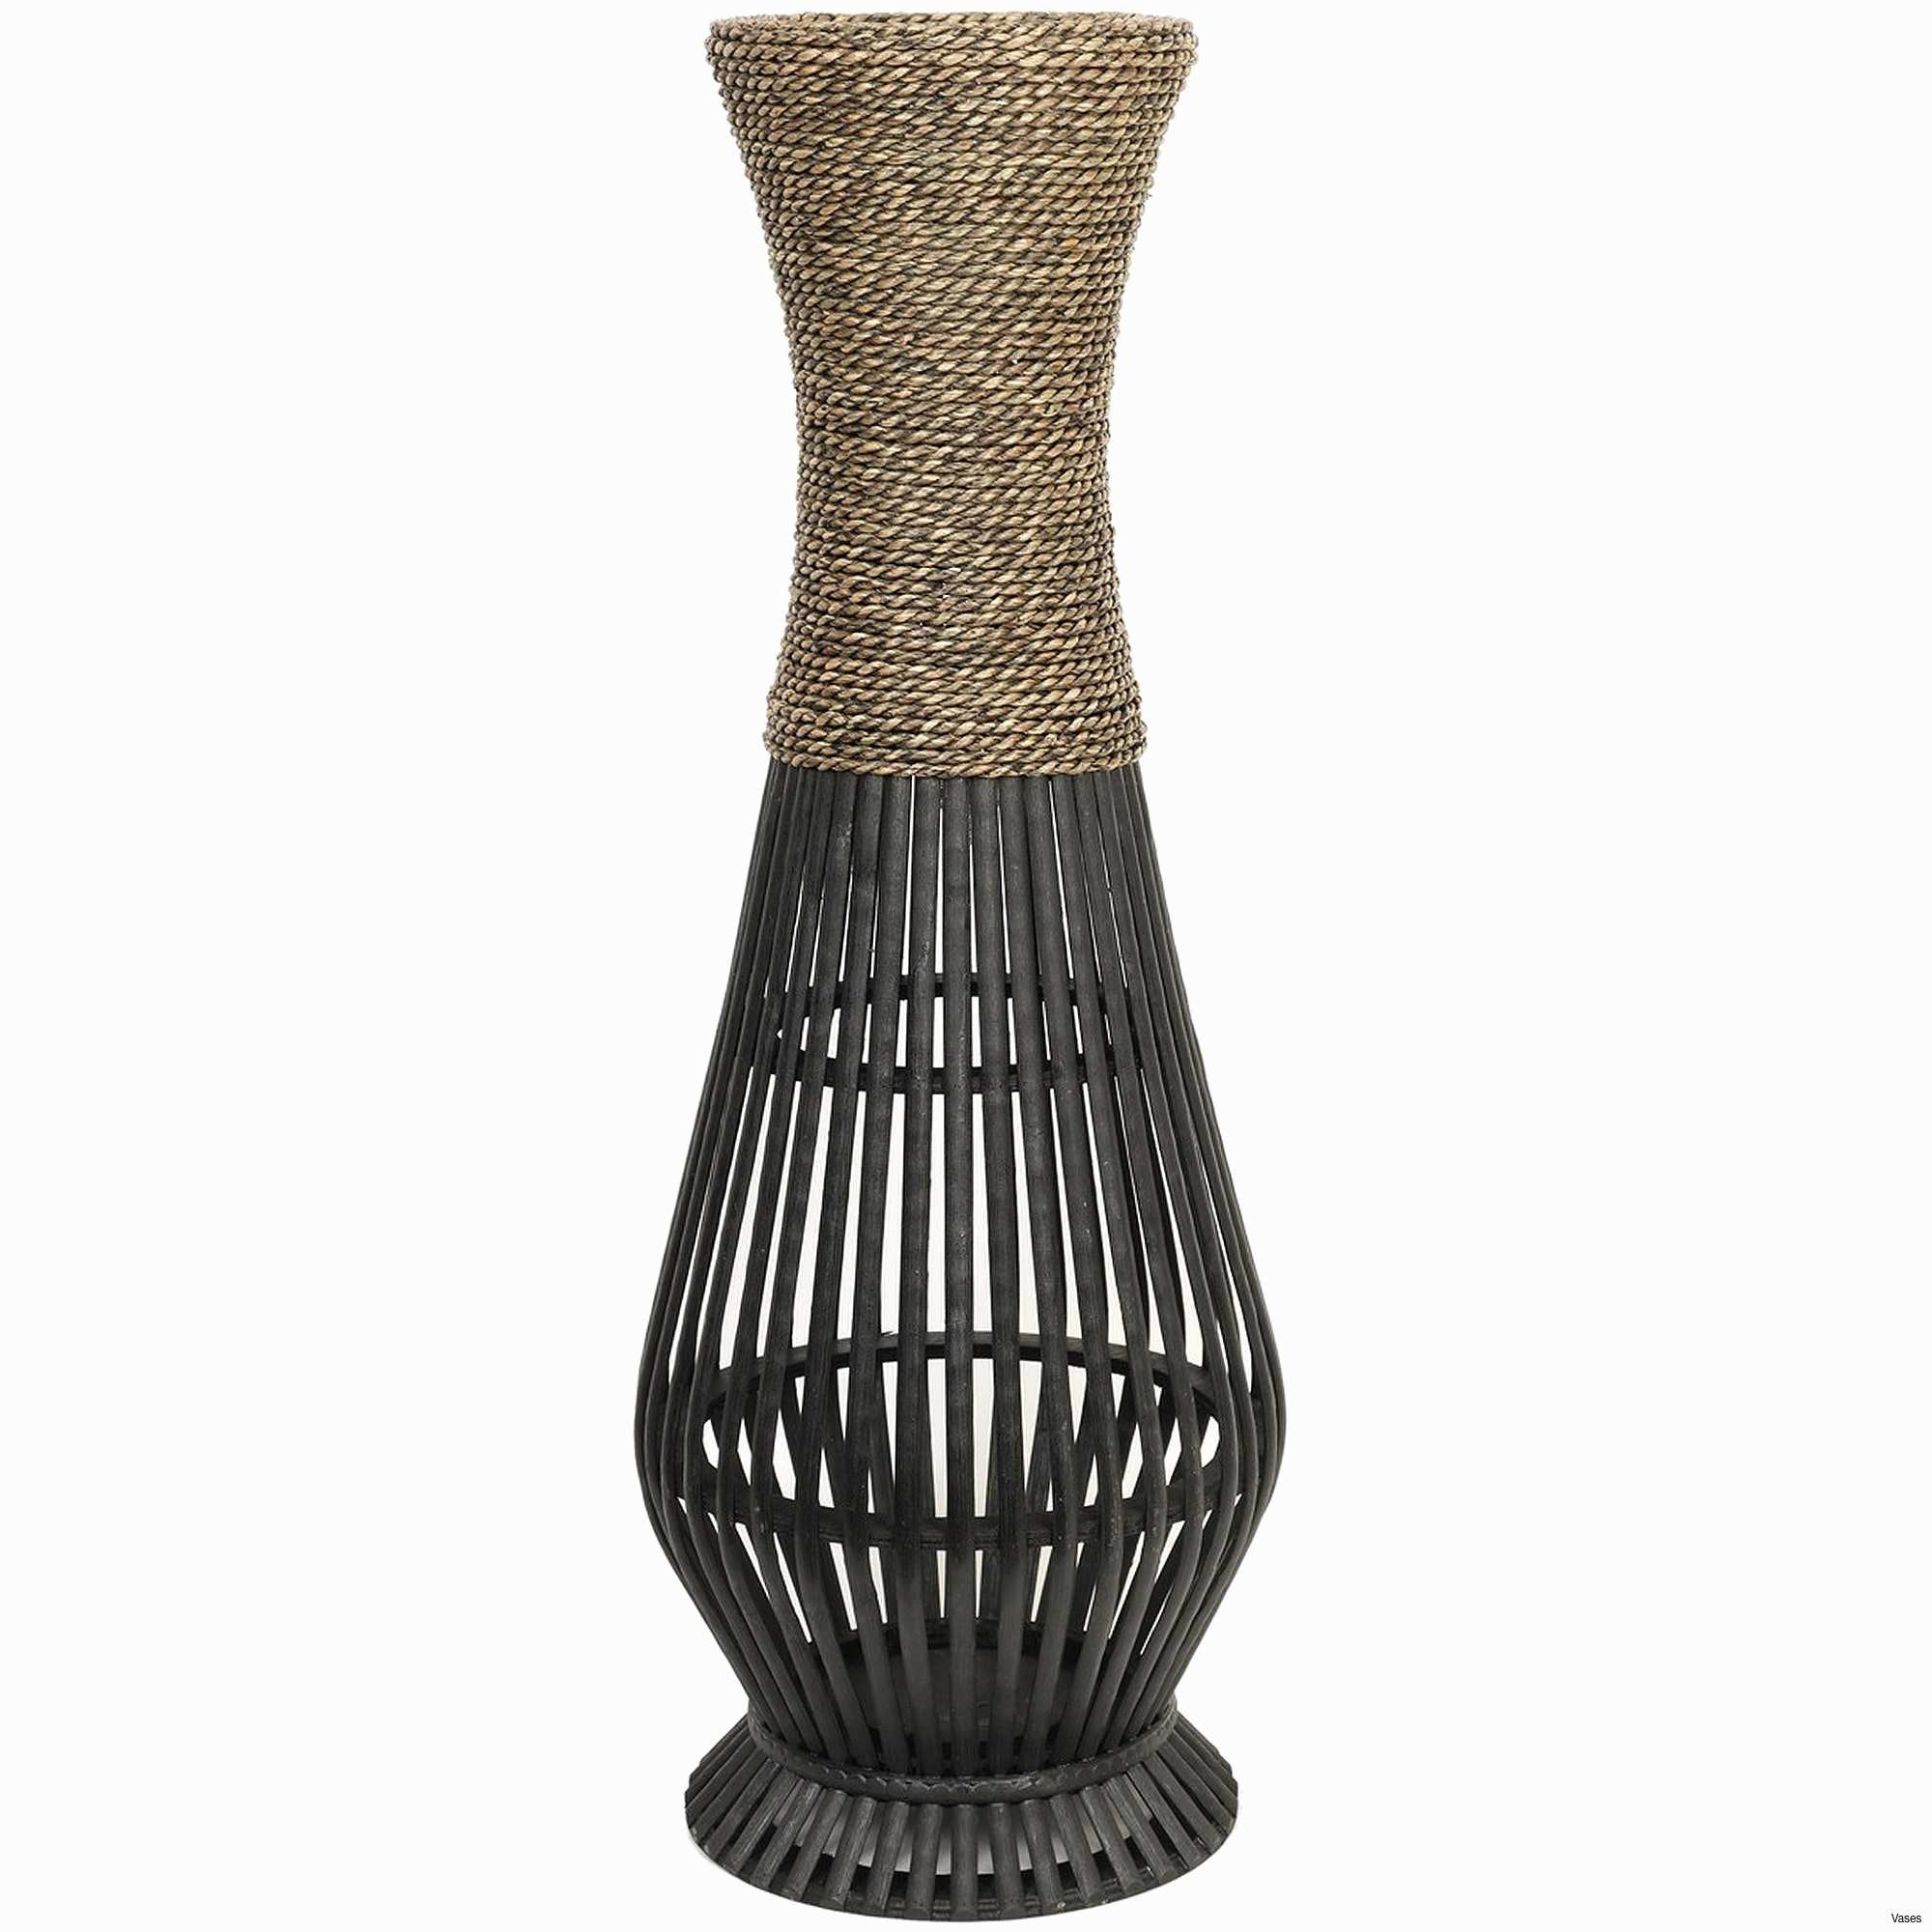 19 Amazing Tall Vase Candle Holder 2021 free download tall vase candle holder of beautiful glass floor vases glass home decor best d dkbrw 5743 1h in beautiful glass floor vases glass home decor best d dkbrw 5743 1h vases tall wood vase i 0d